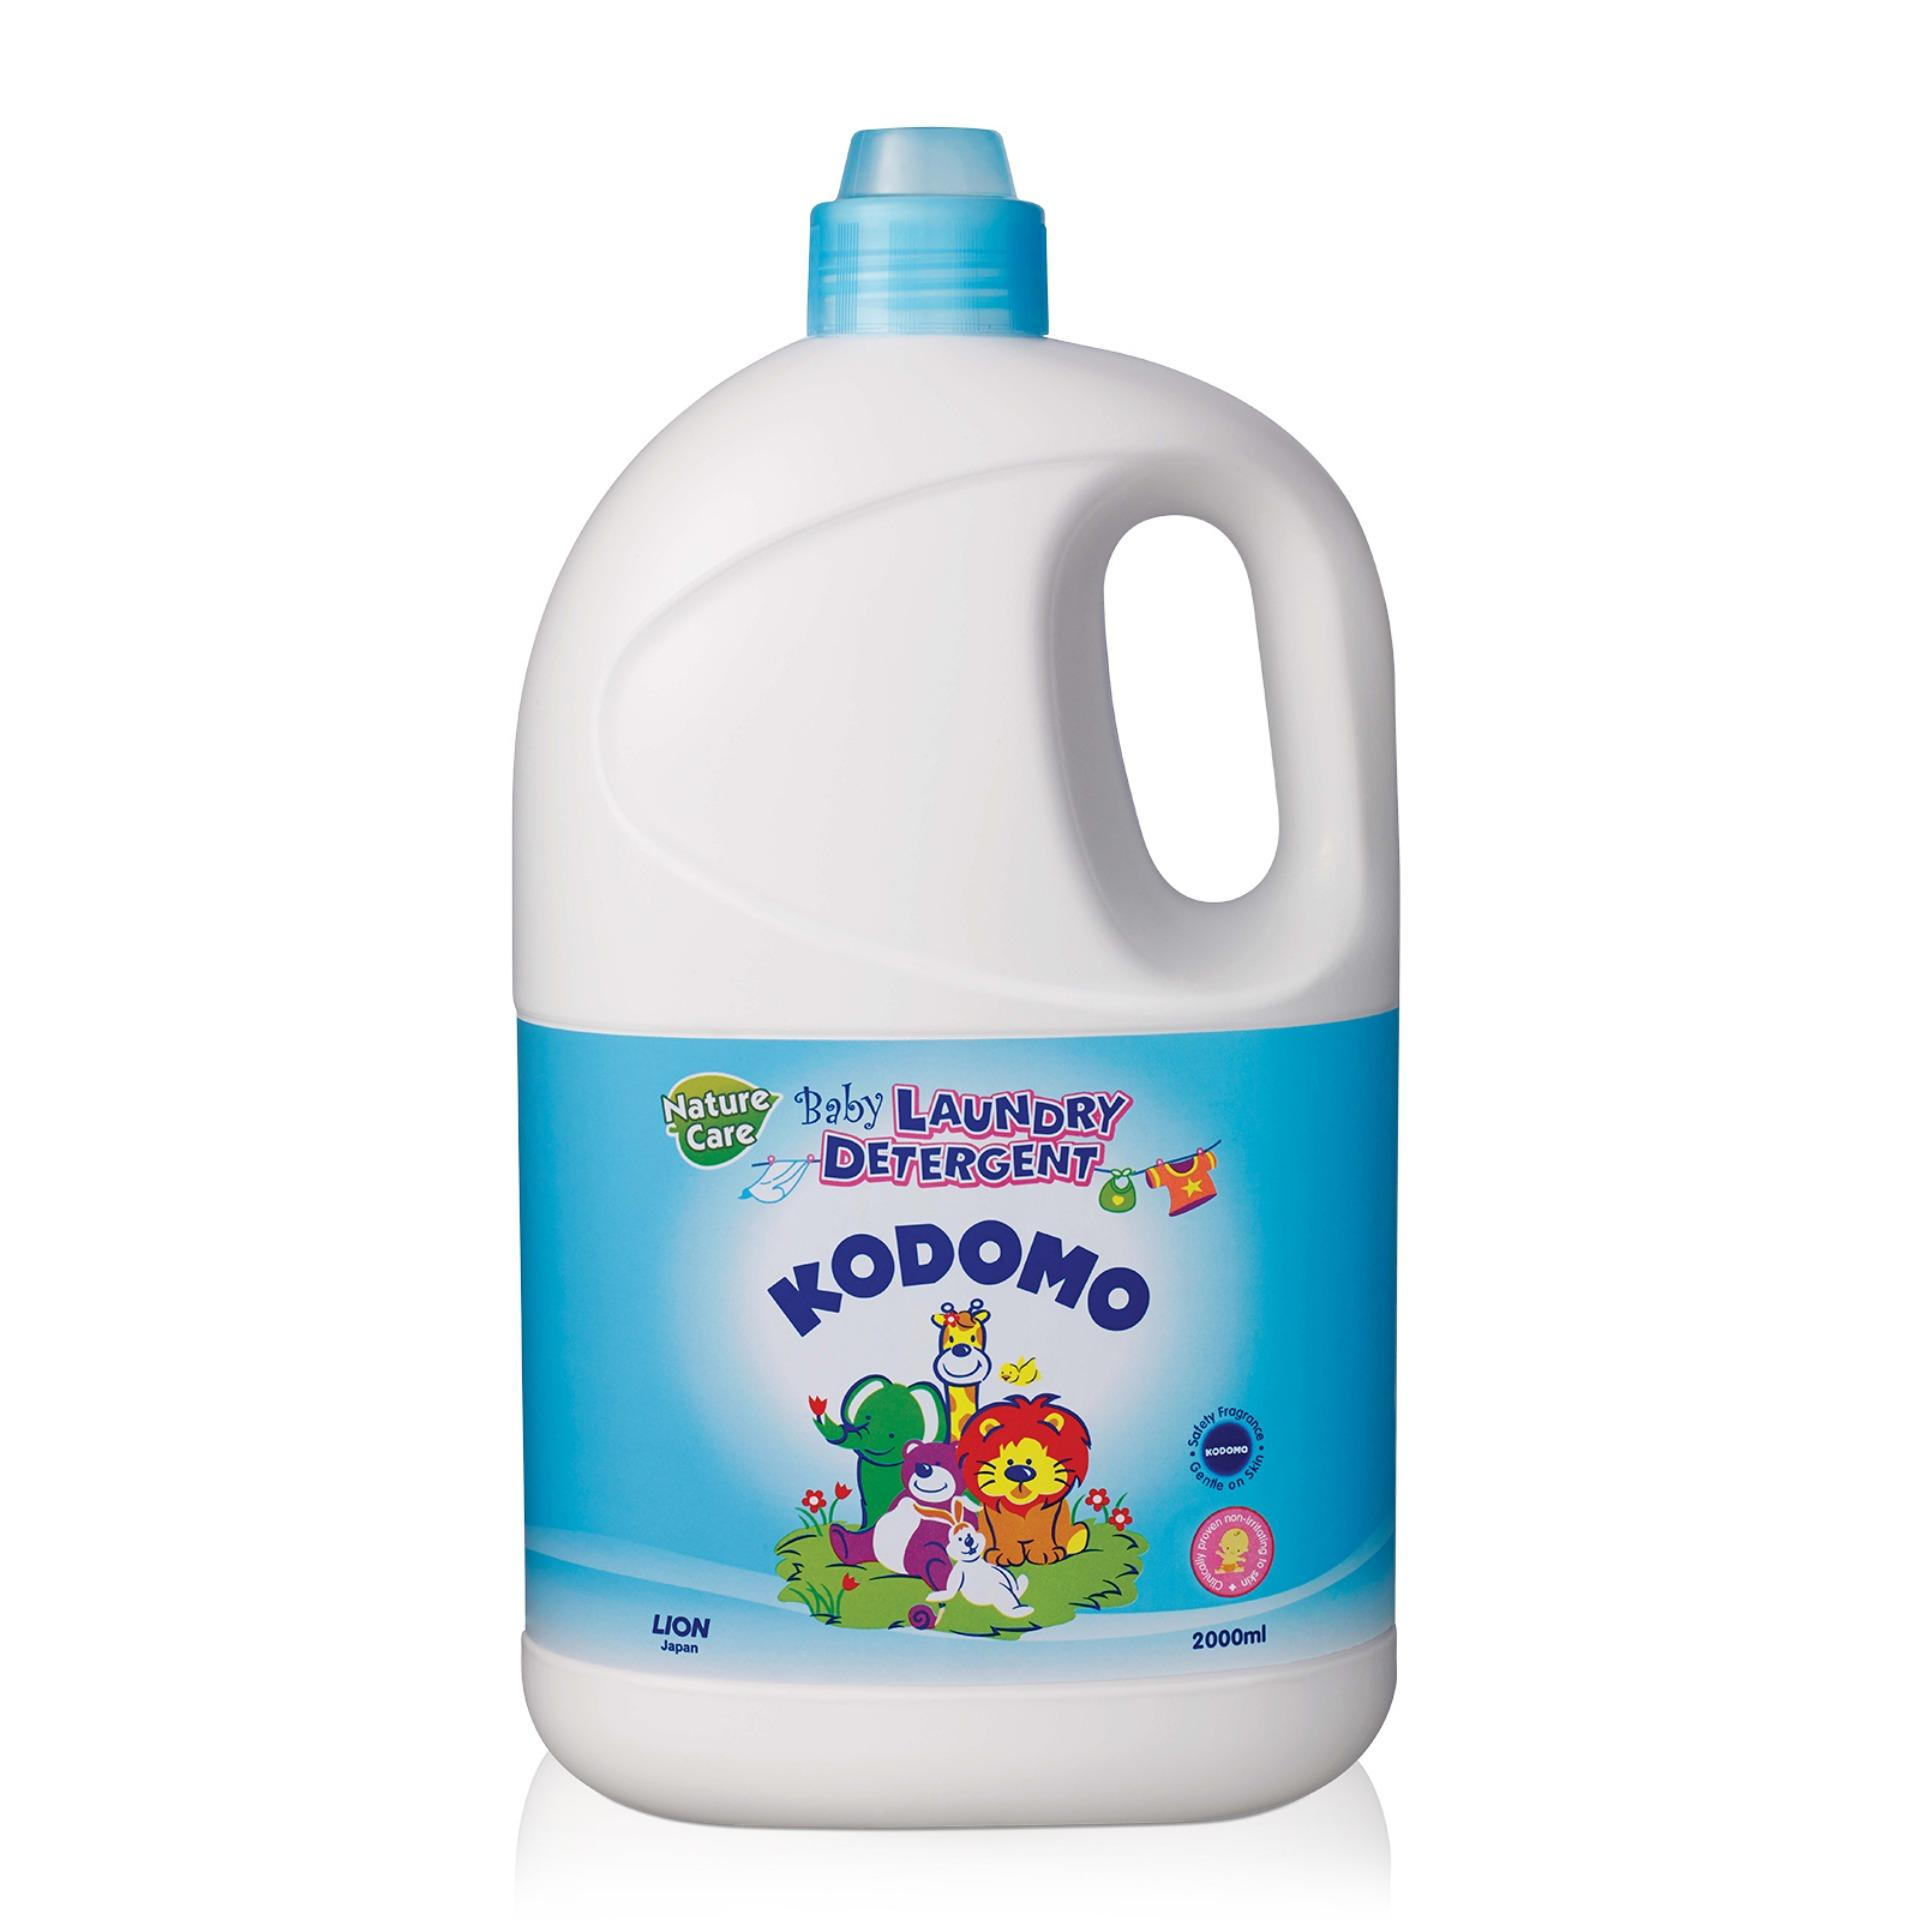 Kodomo Baby Laundry Detergent Nature Care 2L Deal